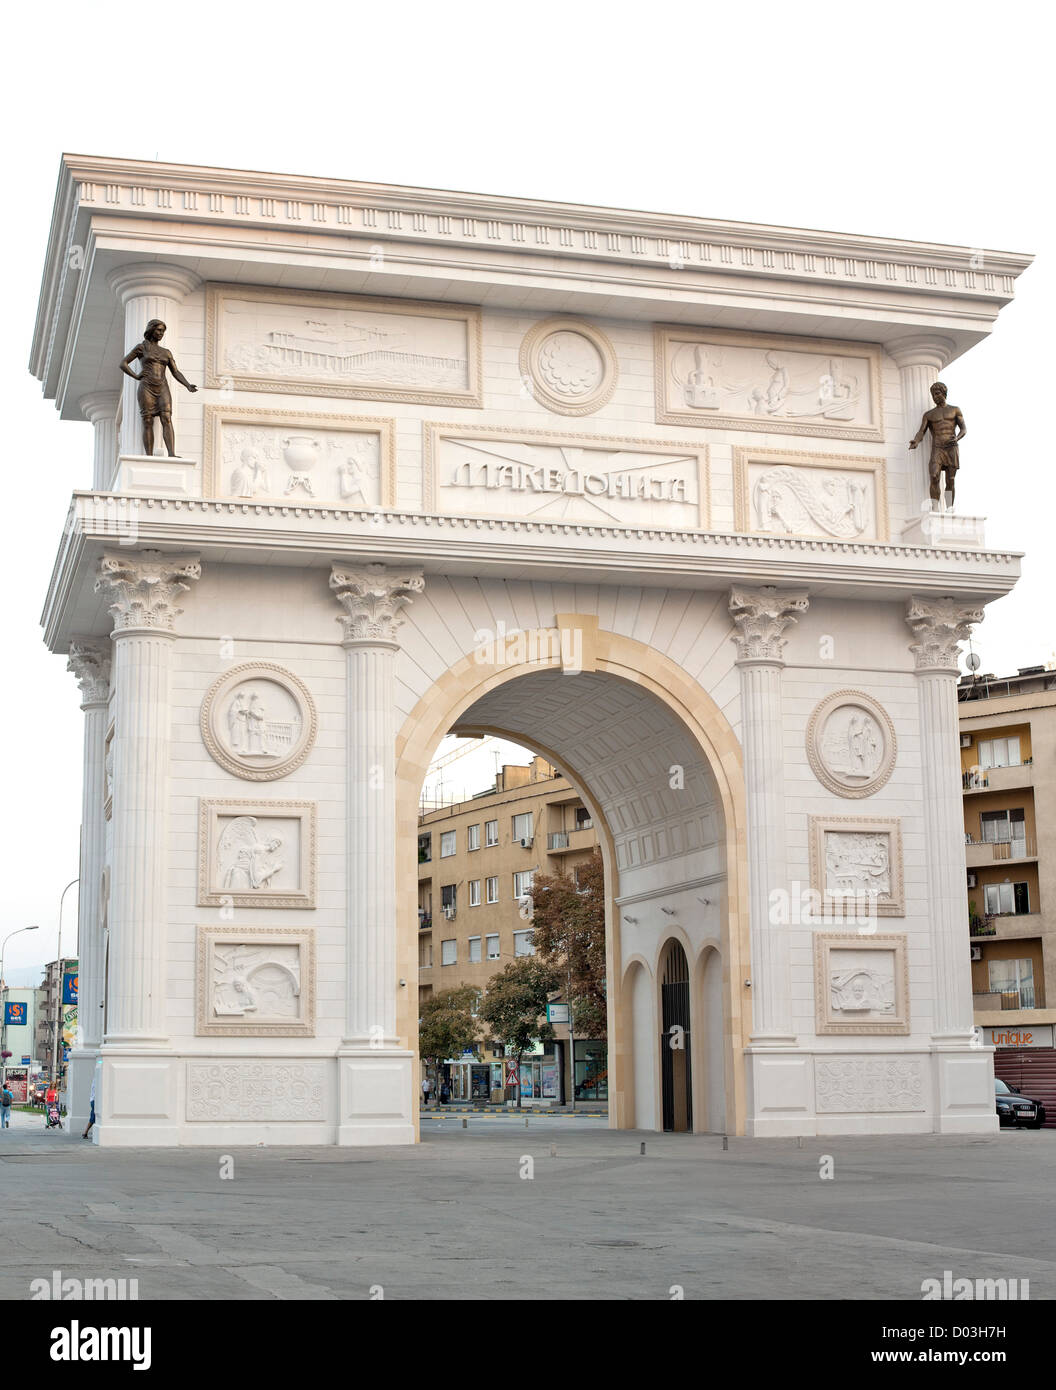 Porta Macedonia, a triumphal arch in Skopje, the capital of Macedonia. - Stock Image